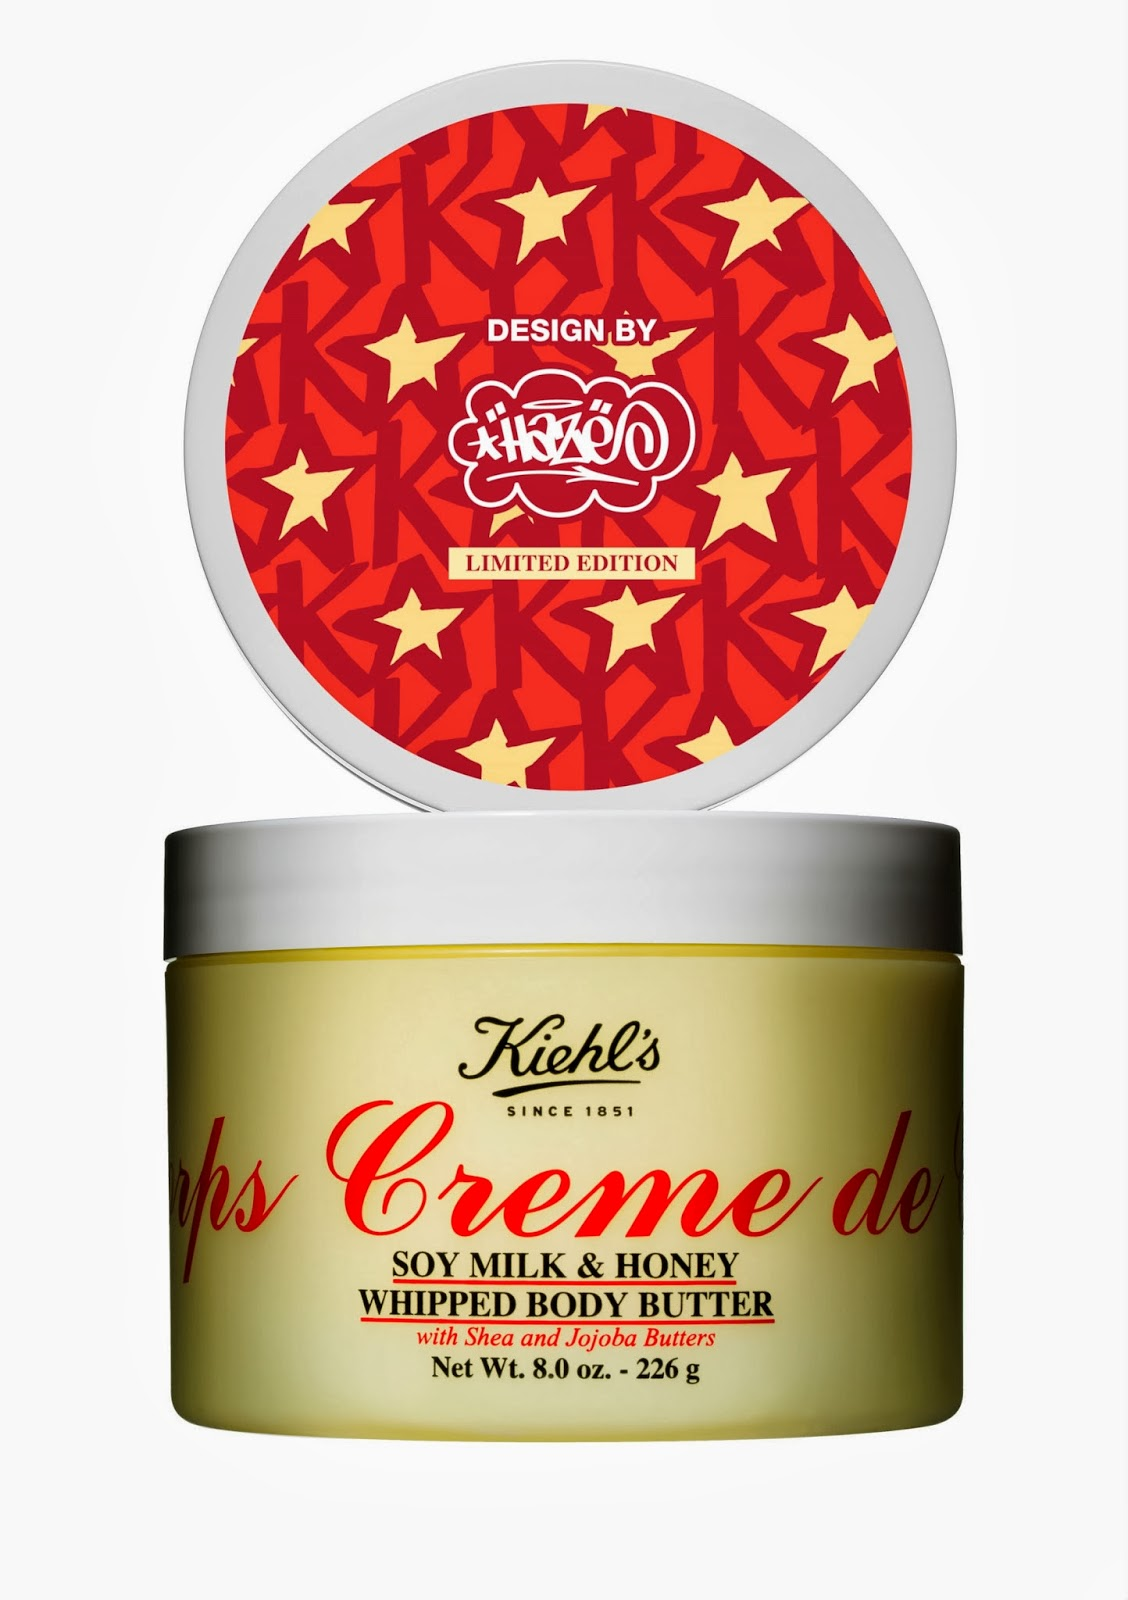 Kiehl's Creme de Corps Soy Milk & Honey Whipped Body Butter